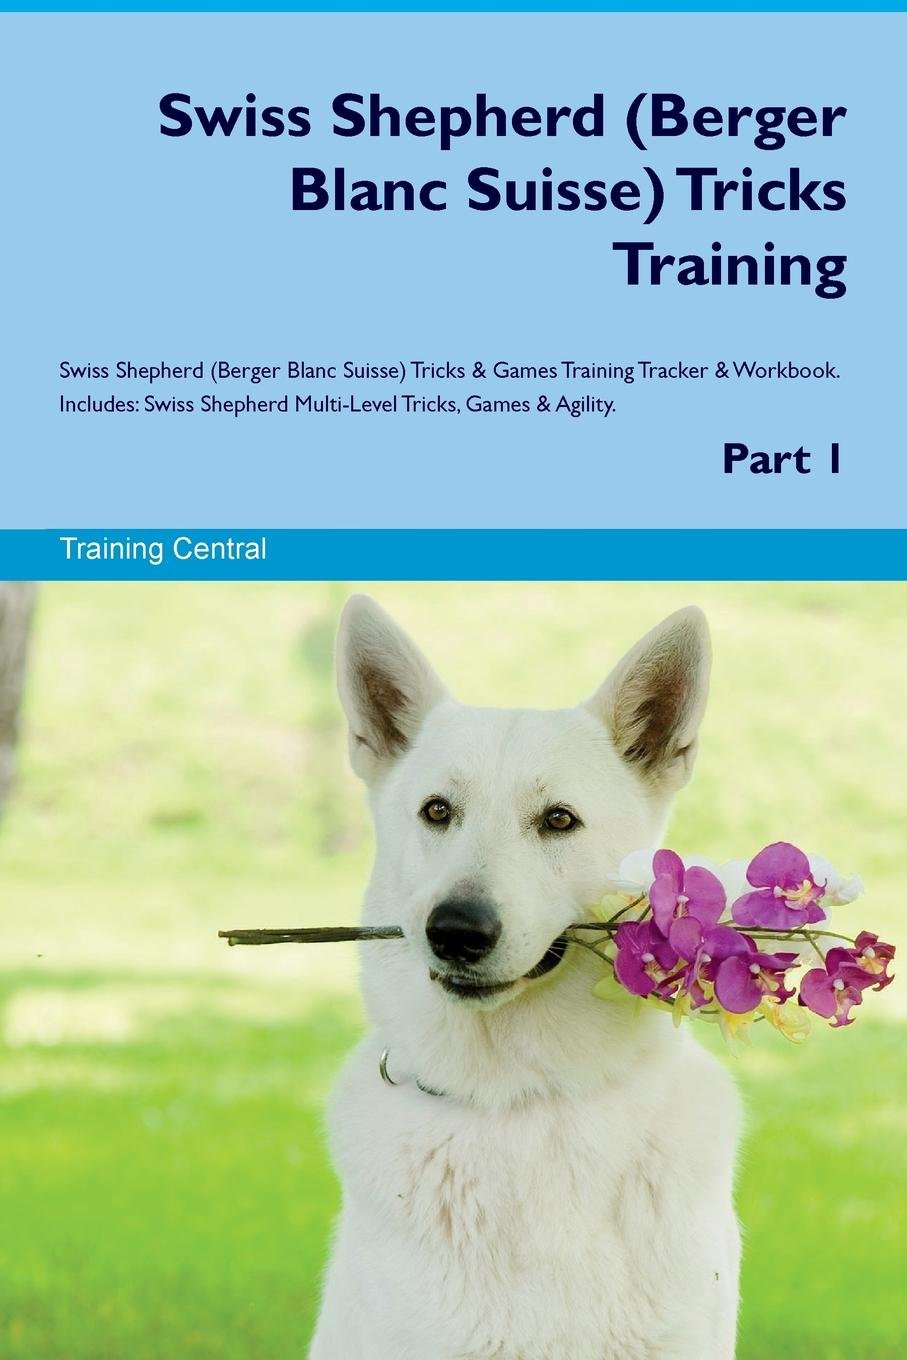 Swiss Shepherd (Berger Blanc Suisse) Tricks Training Swiss Shepherd (Berger Blanc Suisse) Tricks & Games Training Tracker & Workbook.  Includes: Swiss ... Multi-Level Tricks, Games & Agility. Part 1 ebook